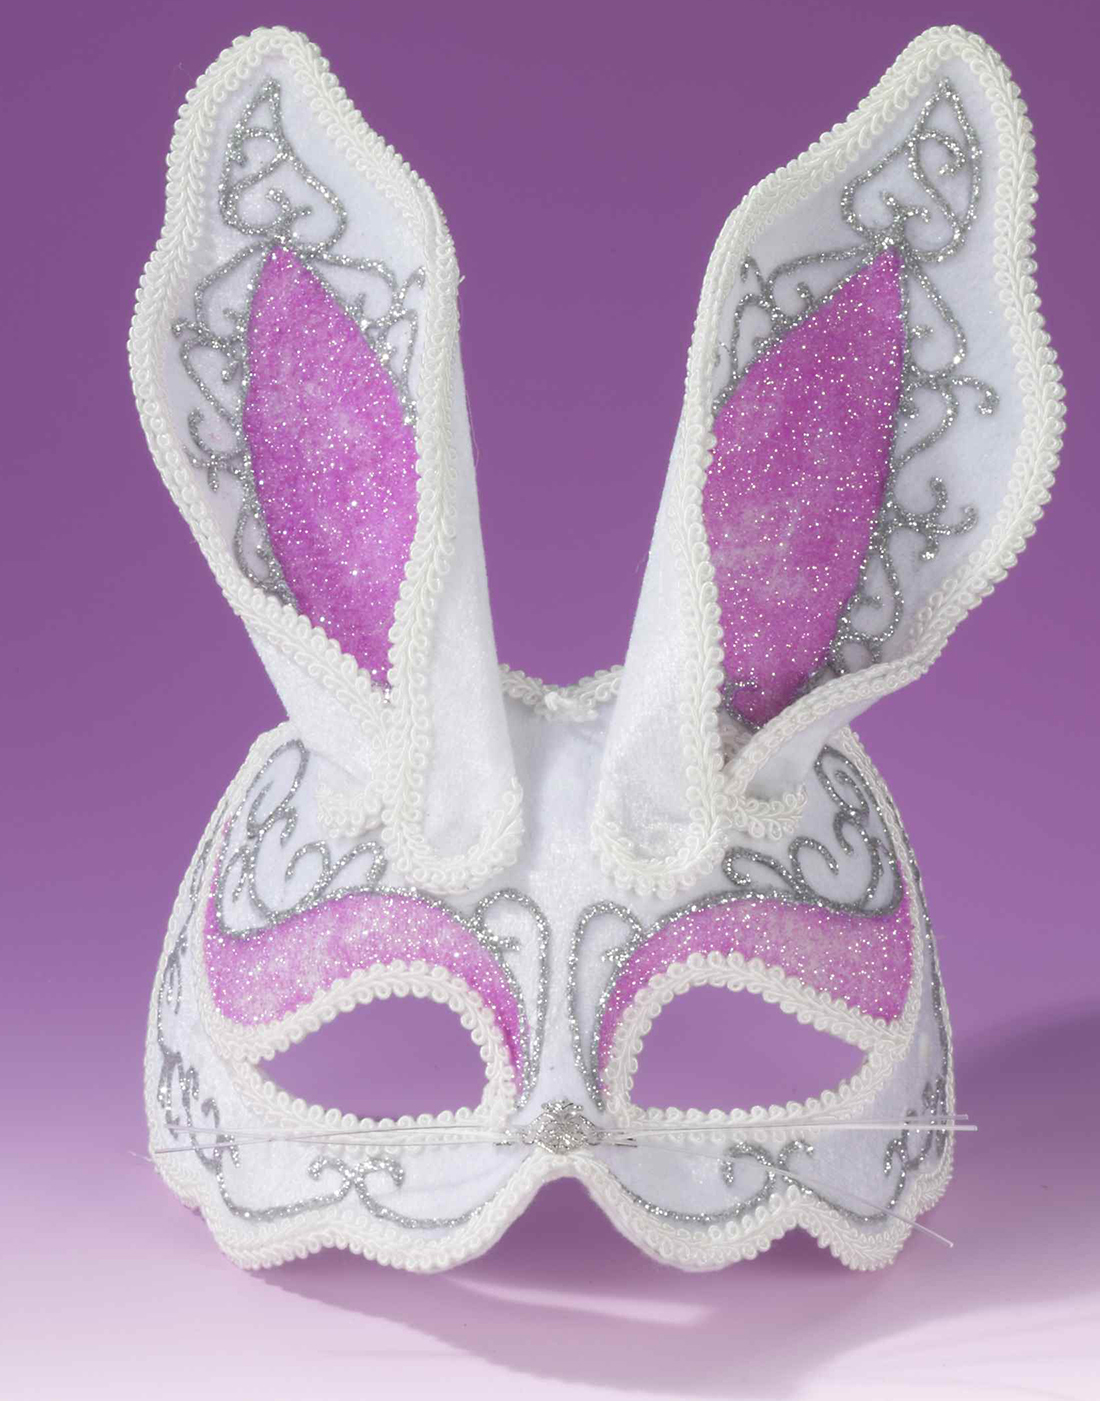 Fancy Bunny 1//2 Mask Masquerade Party Womens Fancy Halloween Costume Accessory